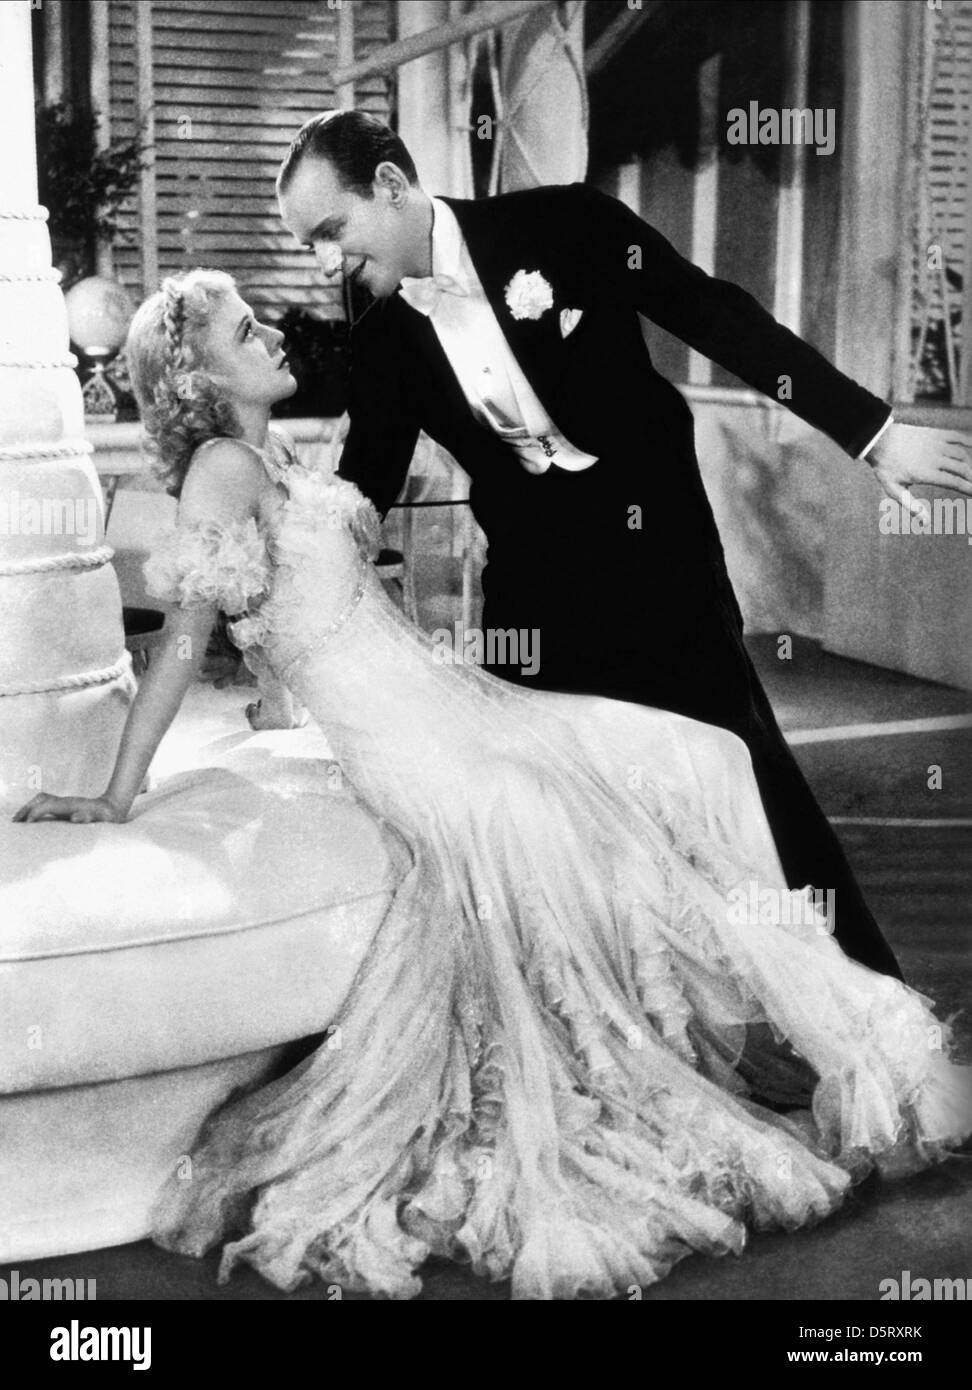 GINGER ROGERS, FRED ASTAIRE, TOP HAT, 1935 Stock Photo